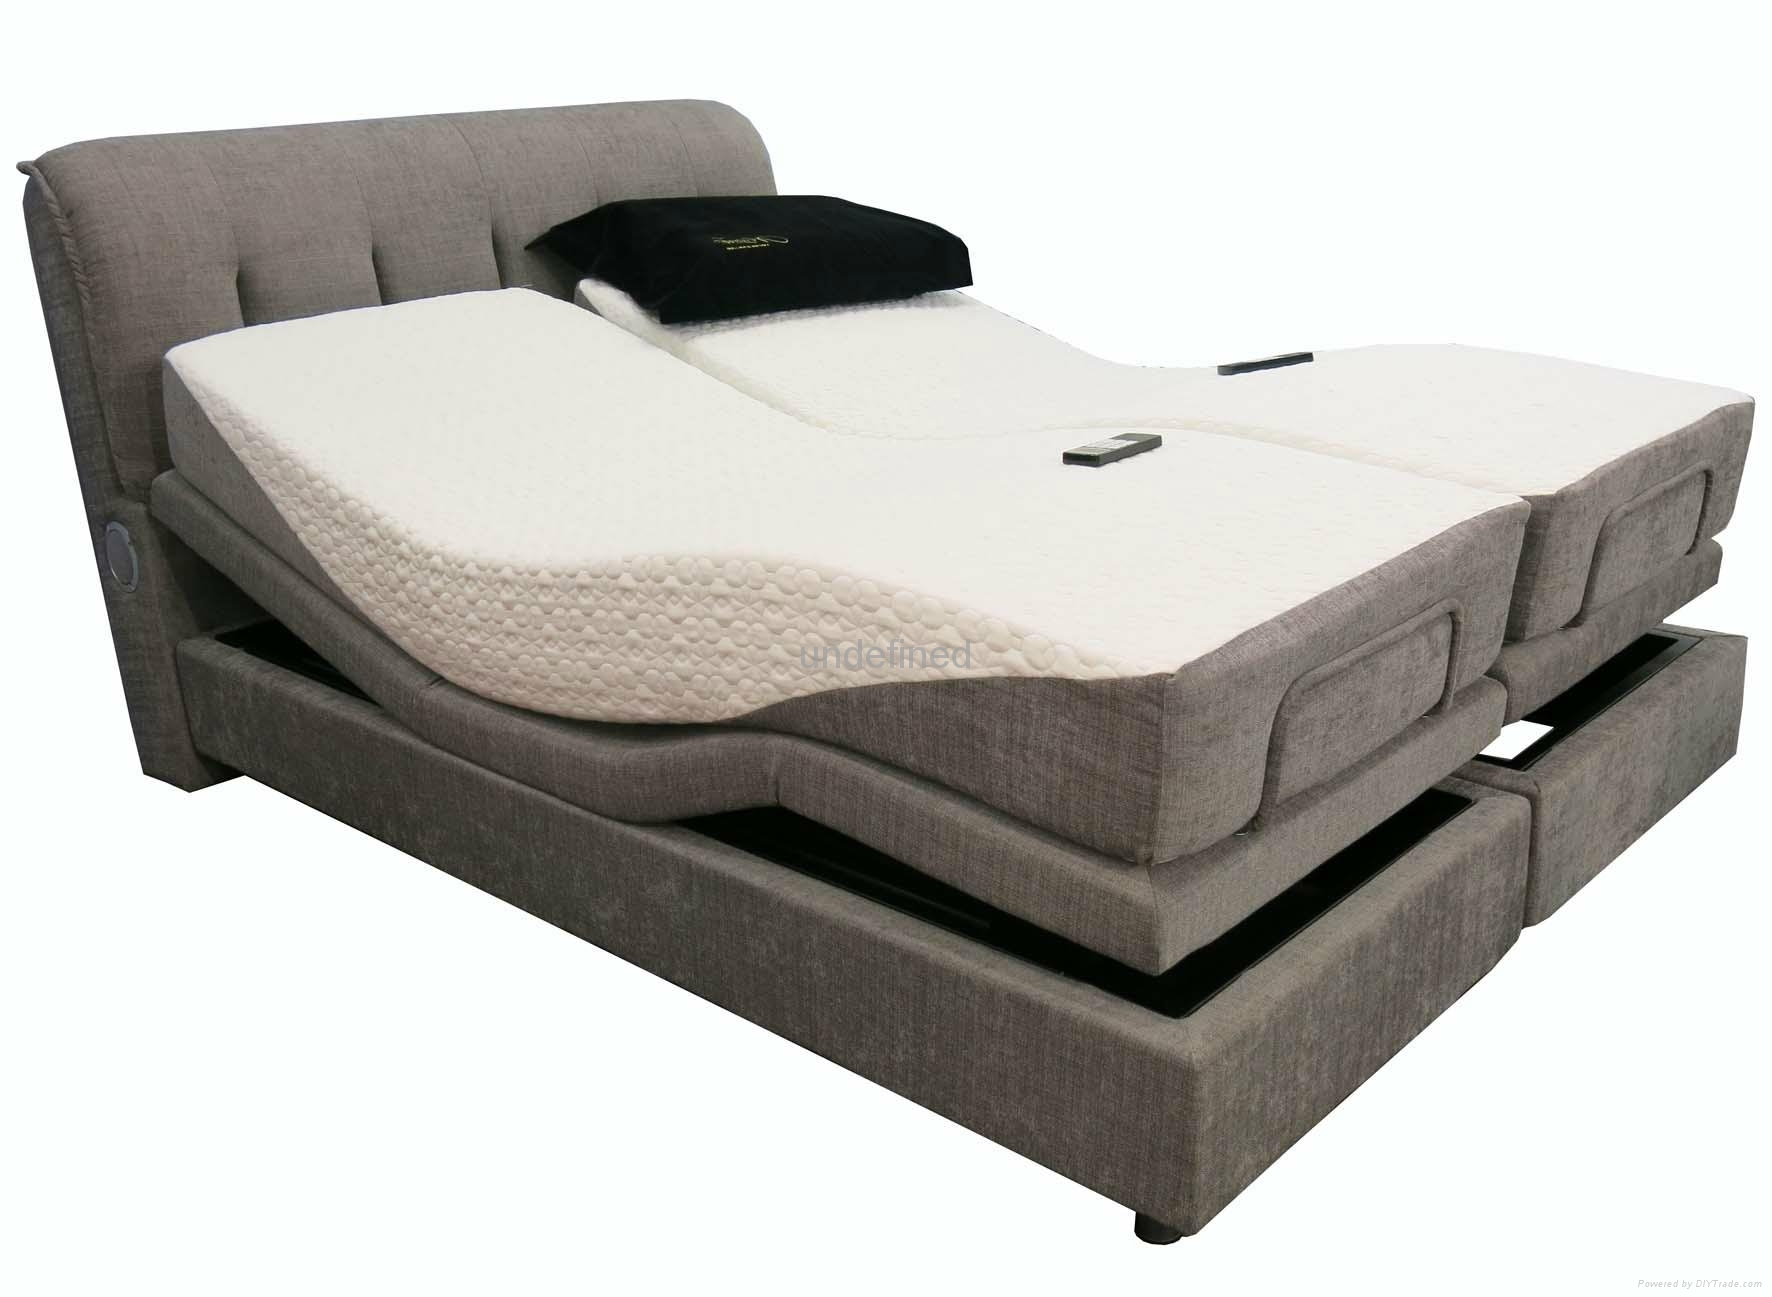 Modern Luxury Queen Size Smart Flex V2 Electric Adjustable